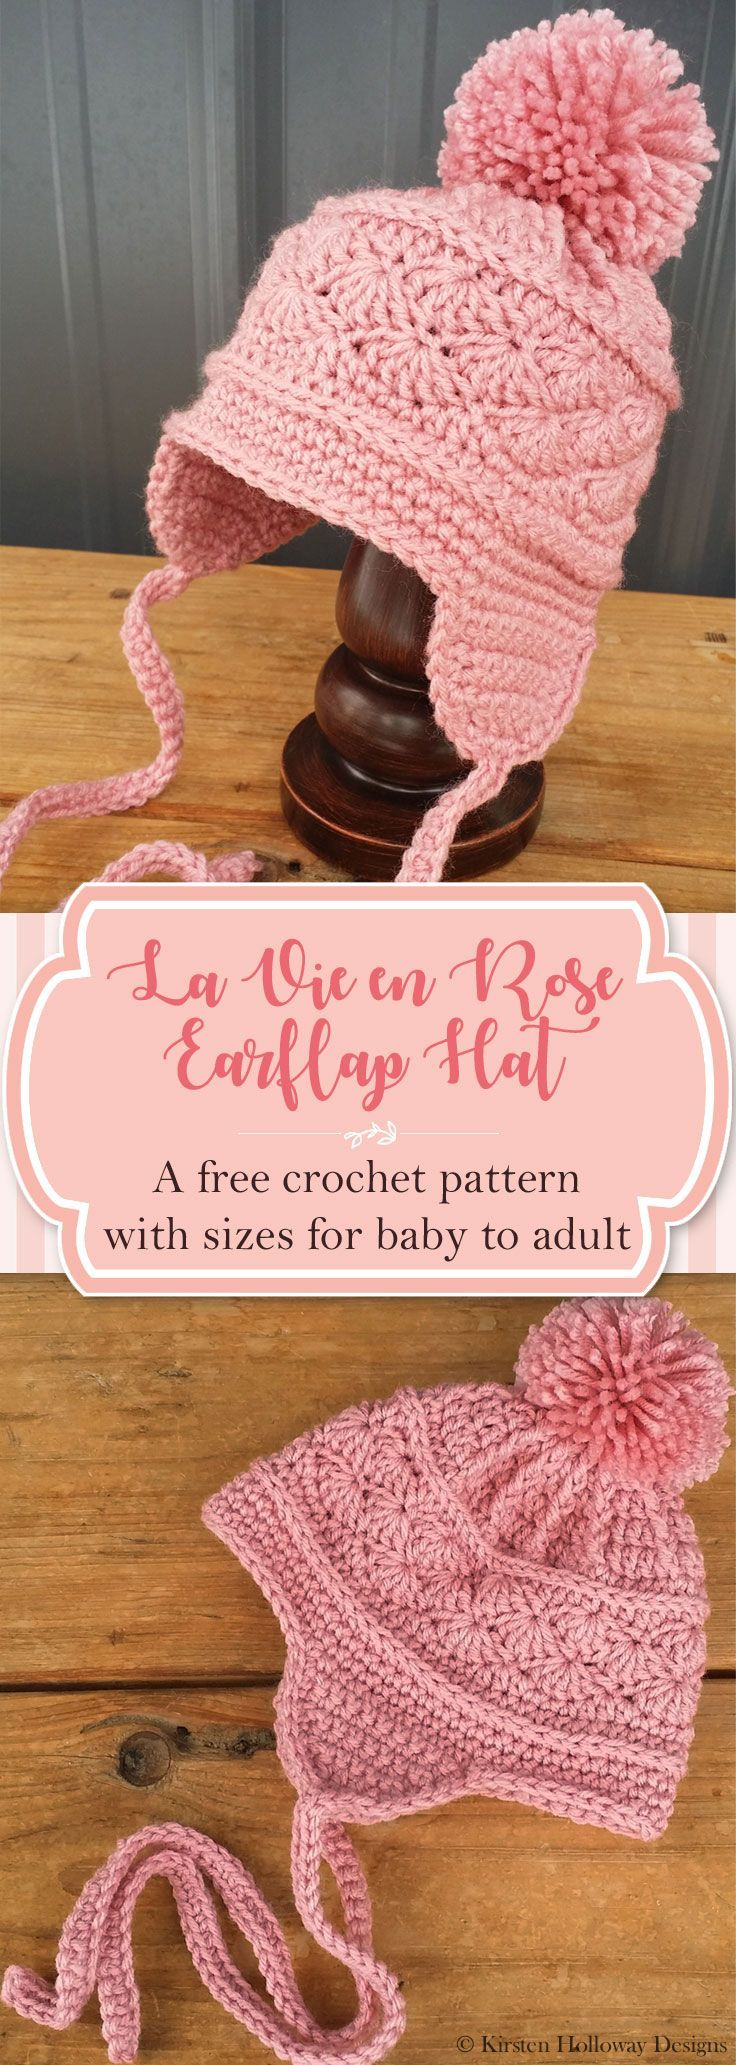 Make a cute ski hat with this free crochet pattern! It's easy to follow, and includes instructions for multiple sizes from baby, and kids, to adult. This is an easy DIY craft pattern that is simple, yet beautiful, and will keep you warm this winter!